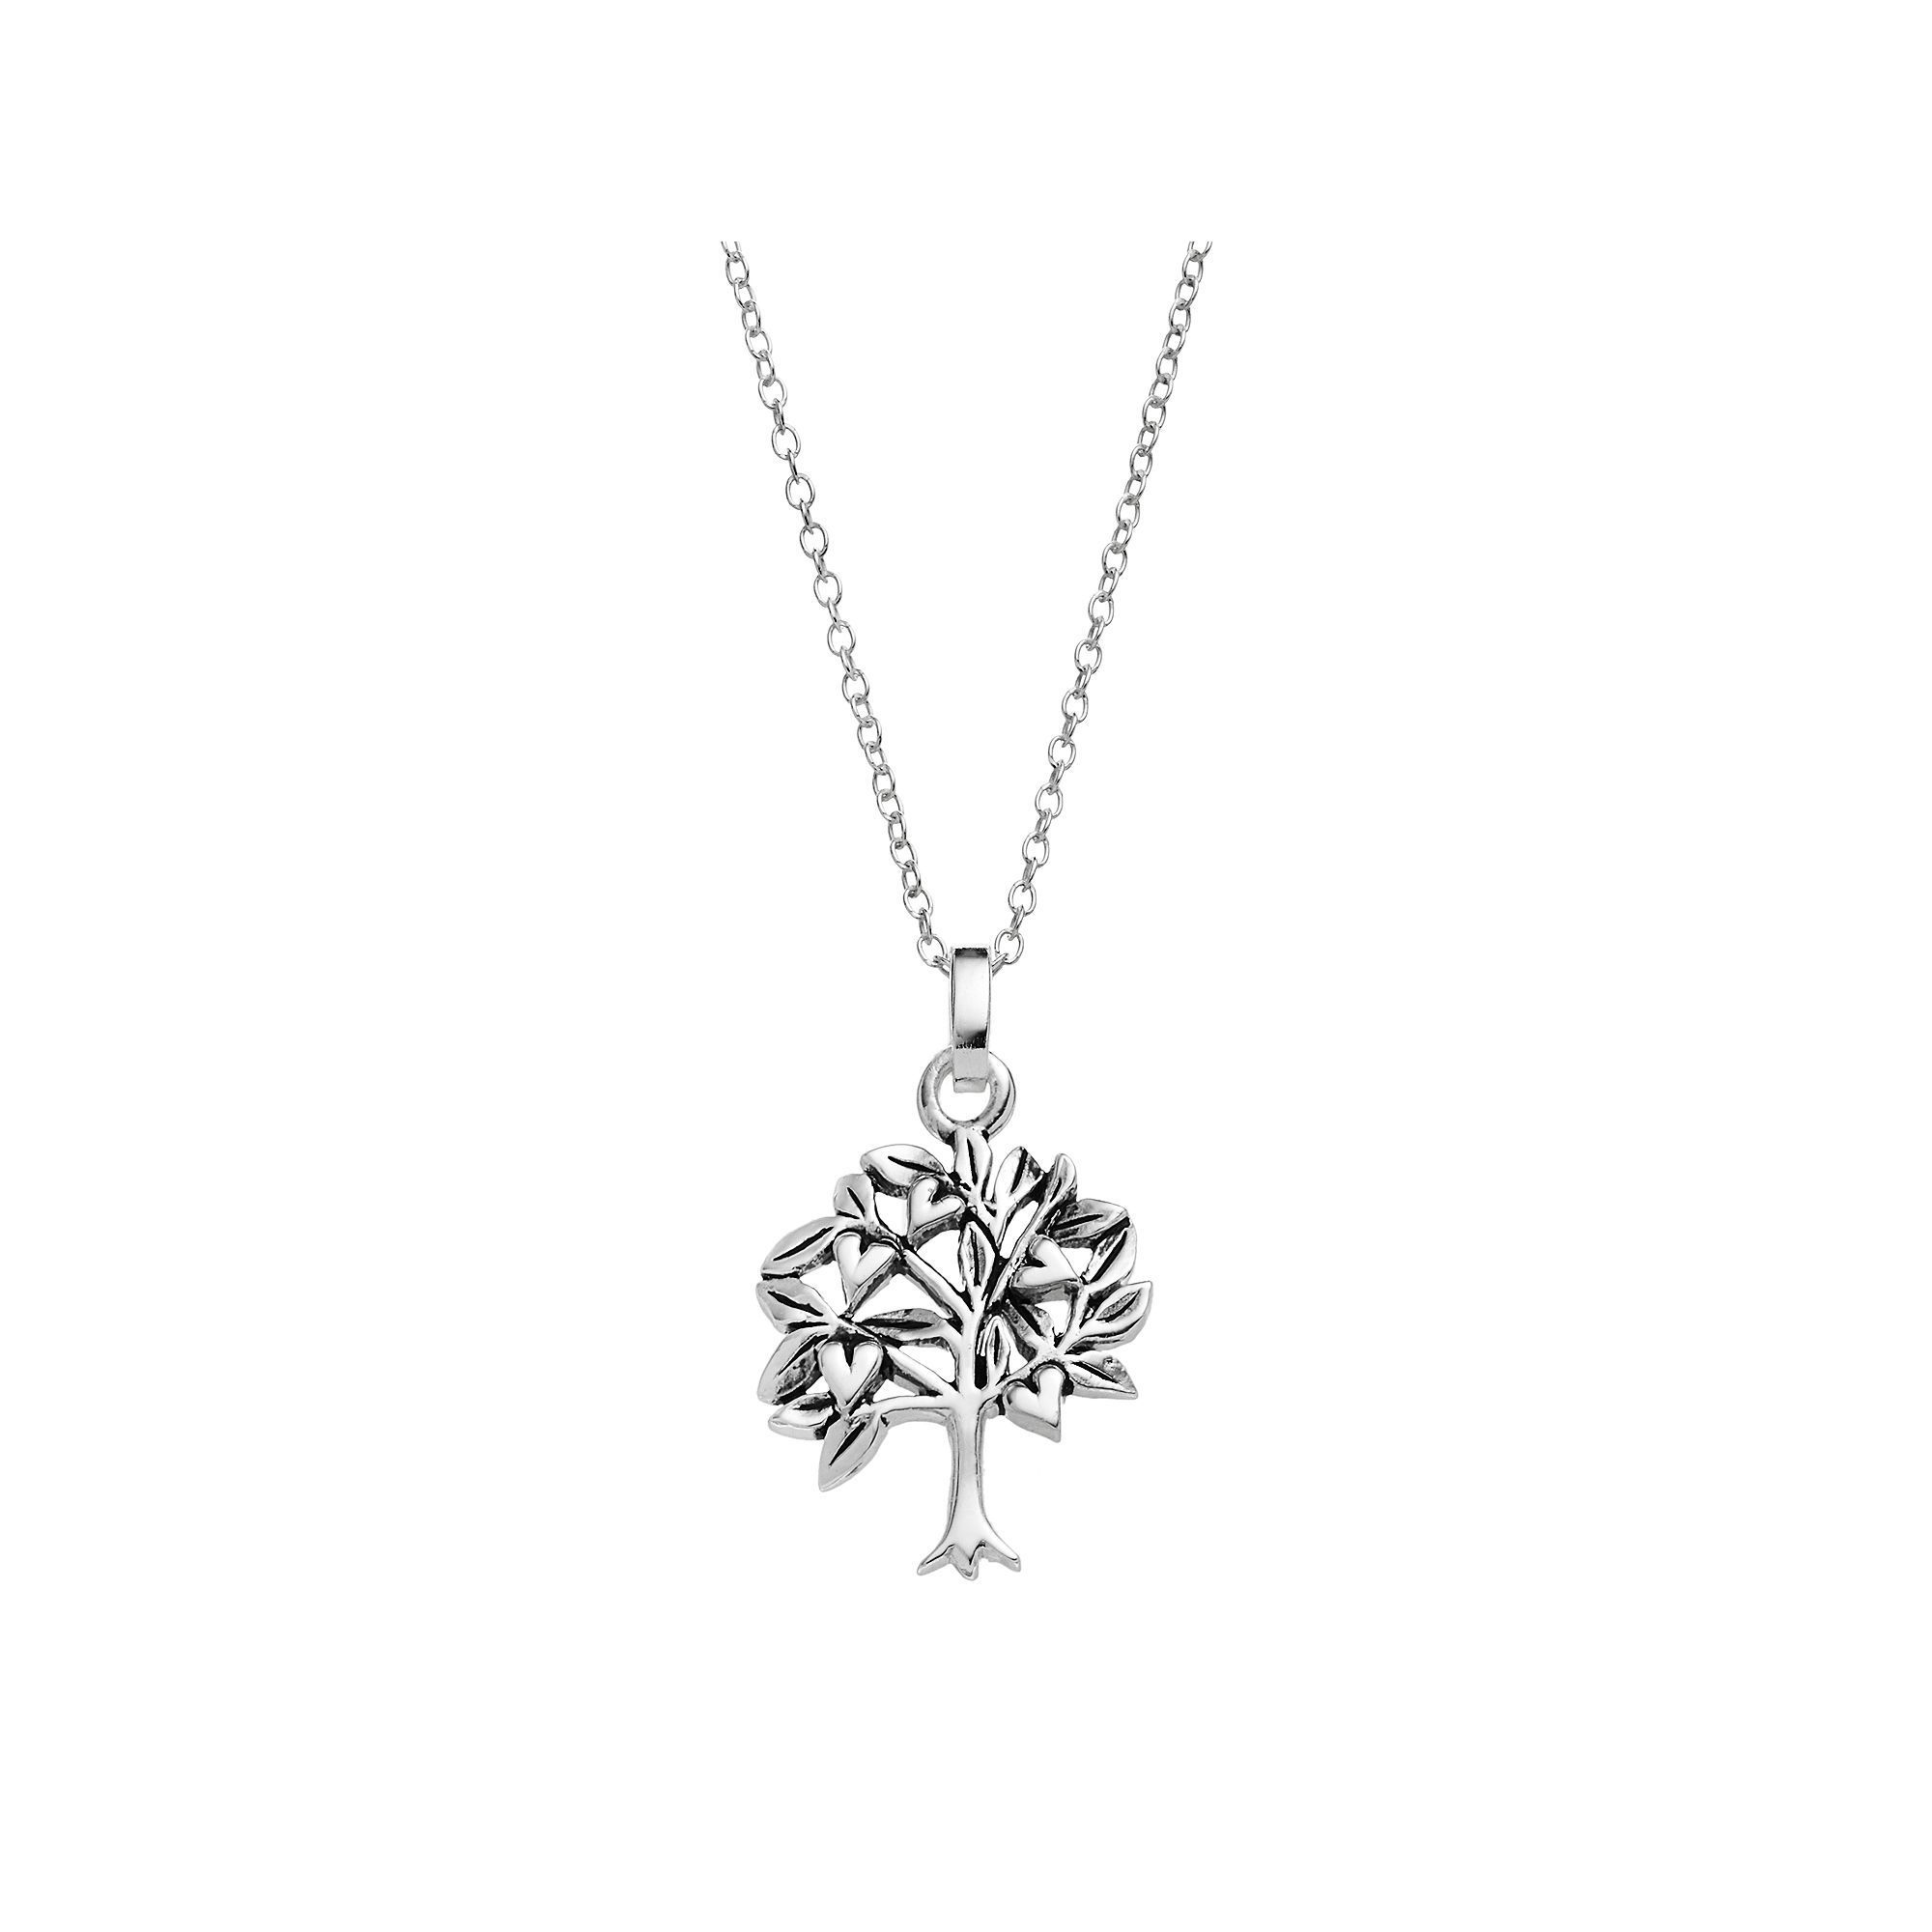 fullxfull products gift life tree grandma mommy jewelry necklace il for original collections of t eeyp pendant mother family personalized